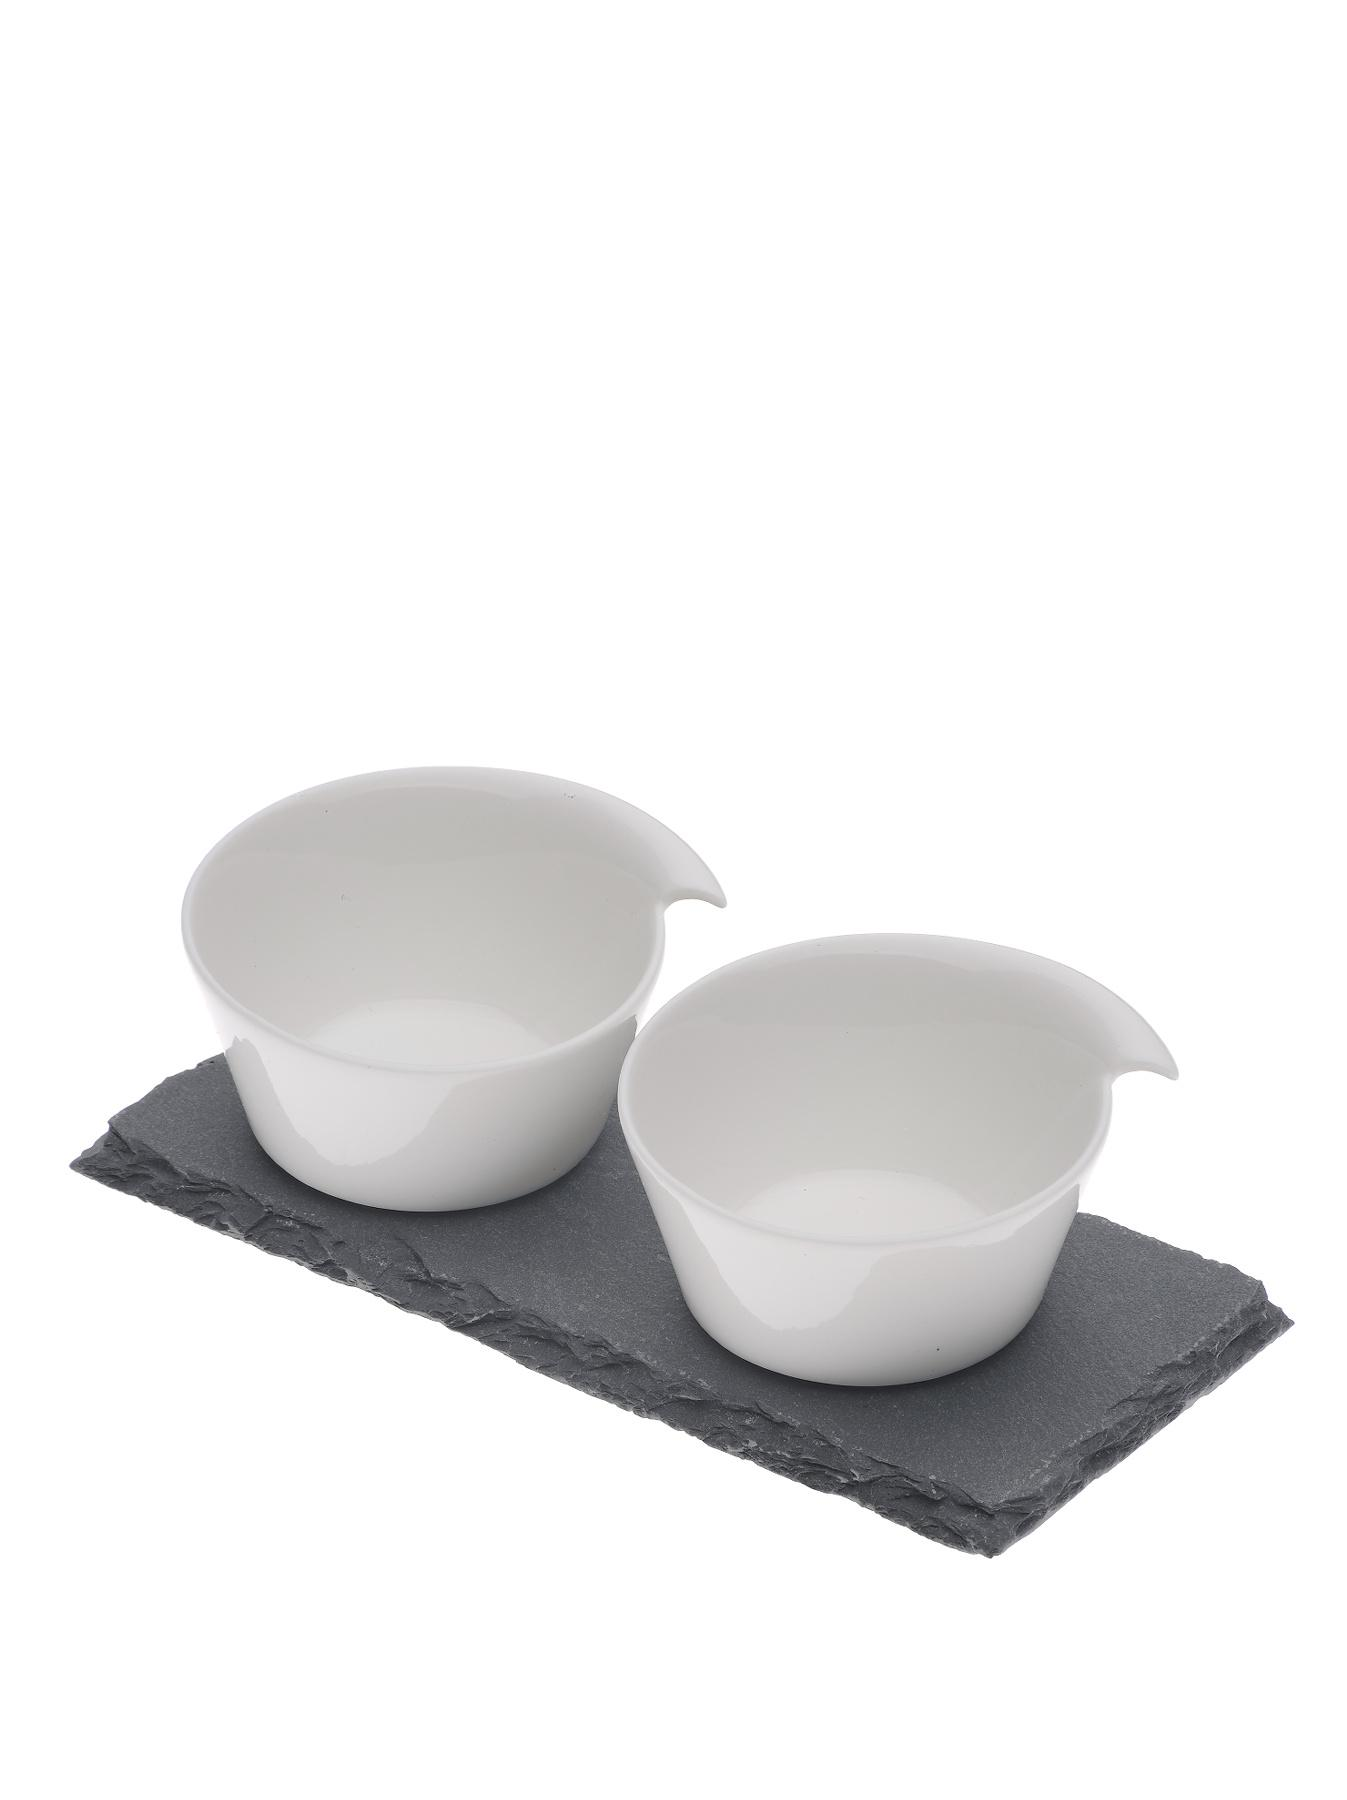 Arthur Price Kitchen Salt and Pepper Pinch Pots on a Slate Base